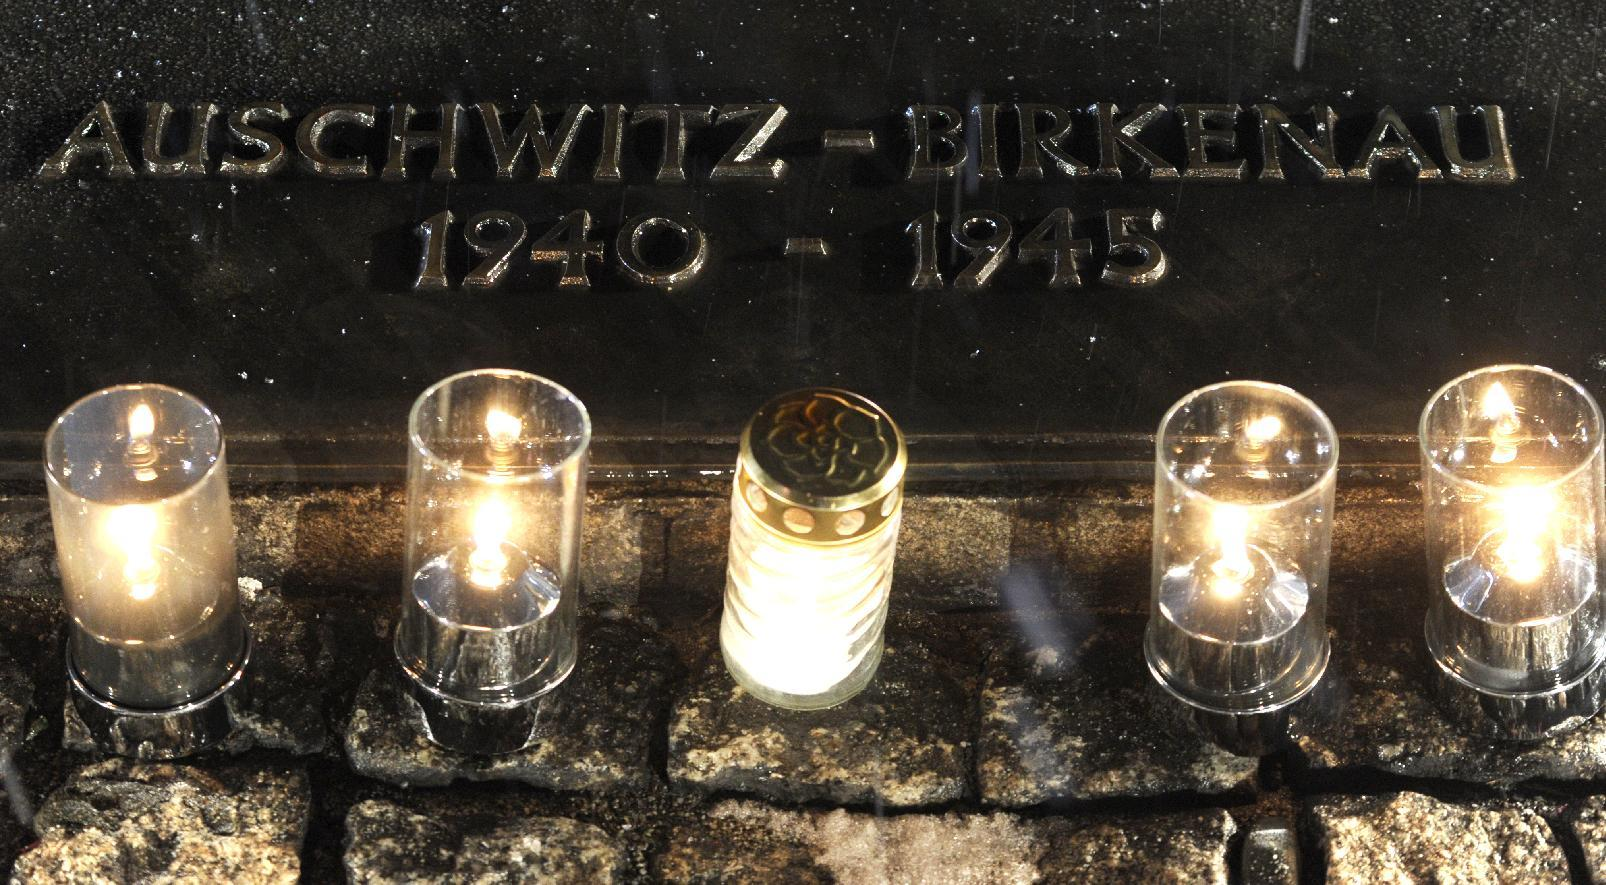 Jewish leader triggers alarm at Auschwitz, held by police